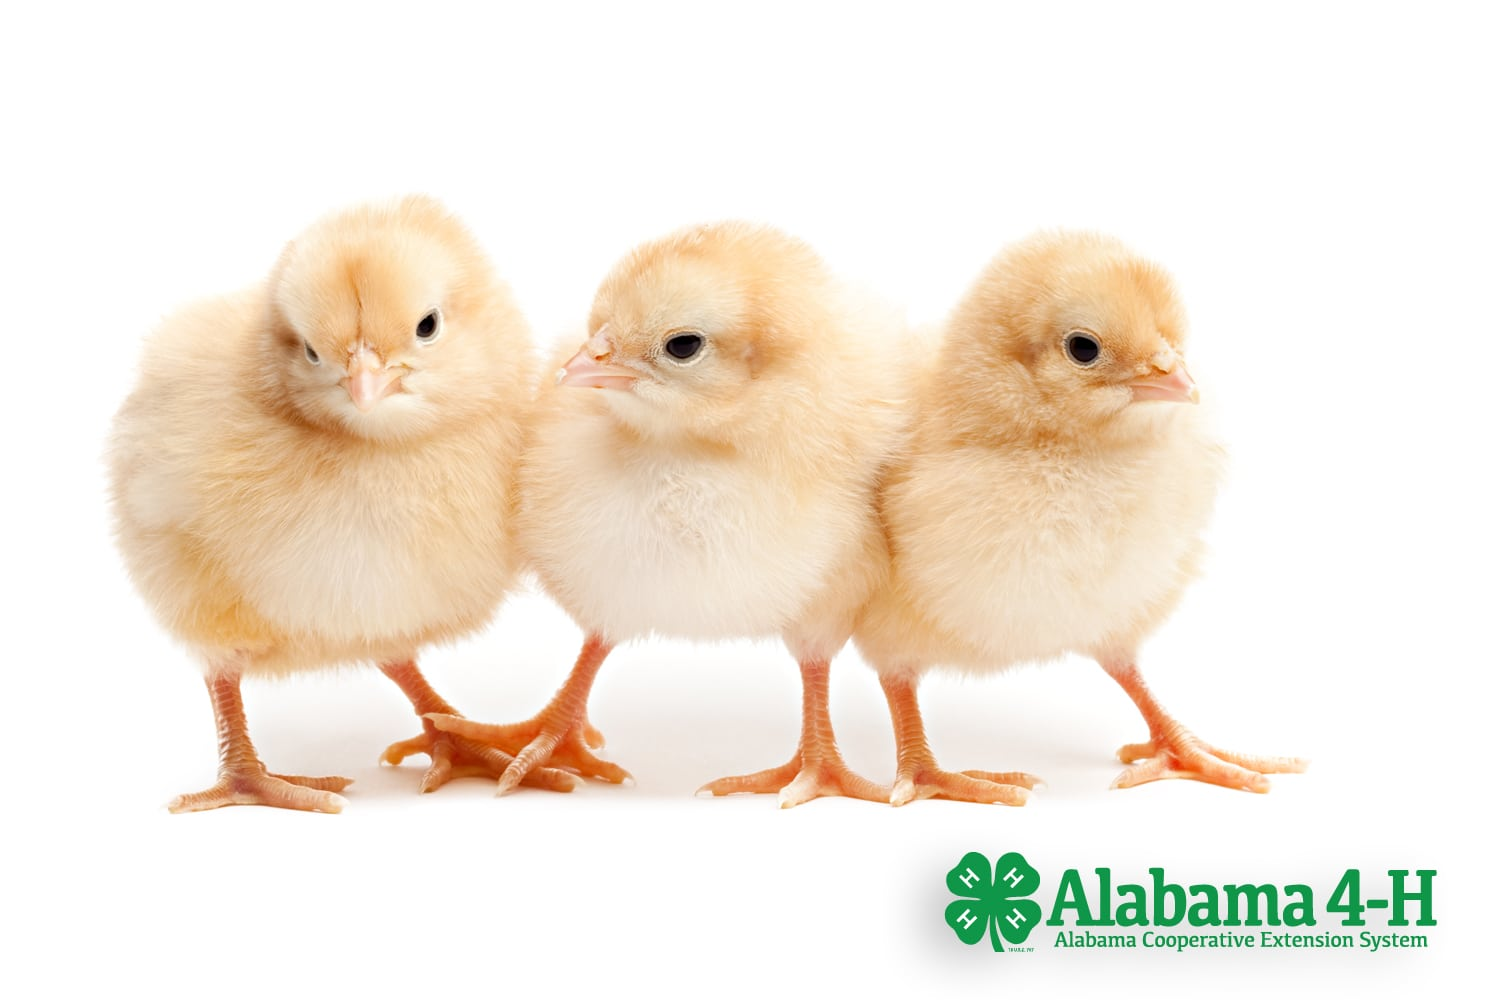 chicks on white background in Alabama 4-H Chick Chain; Alabama 4-H; Animals